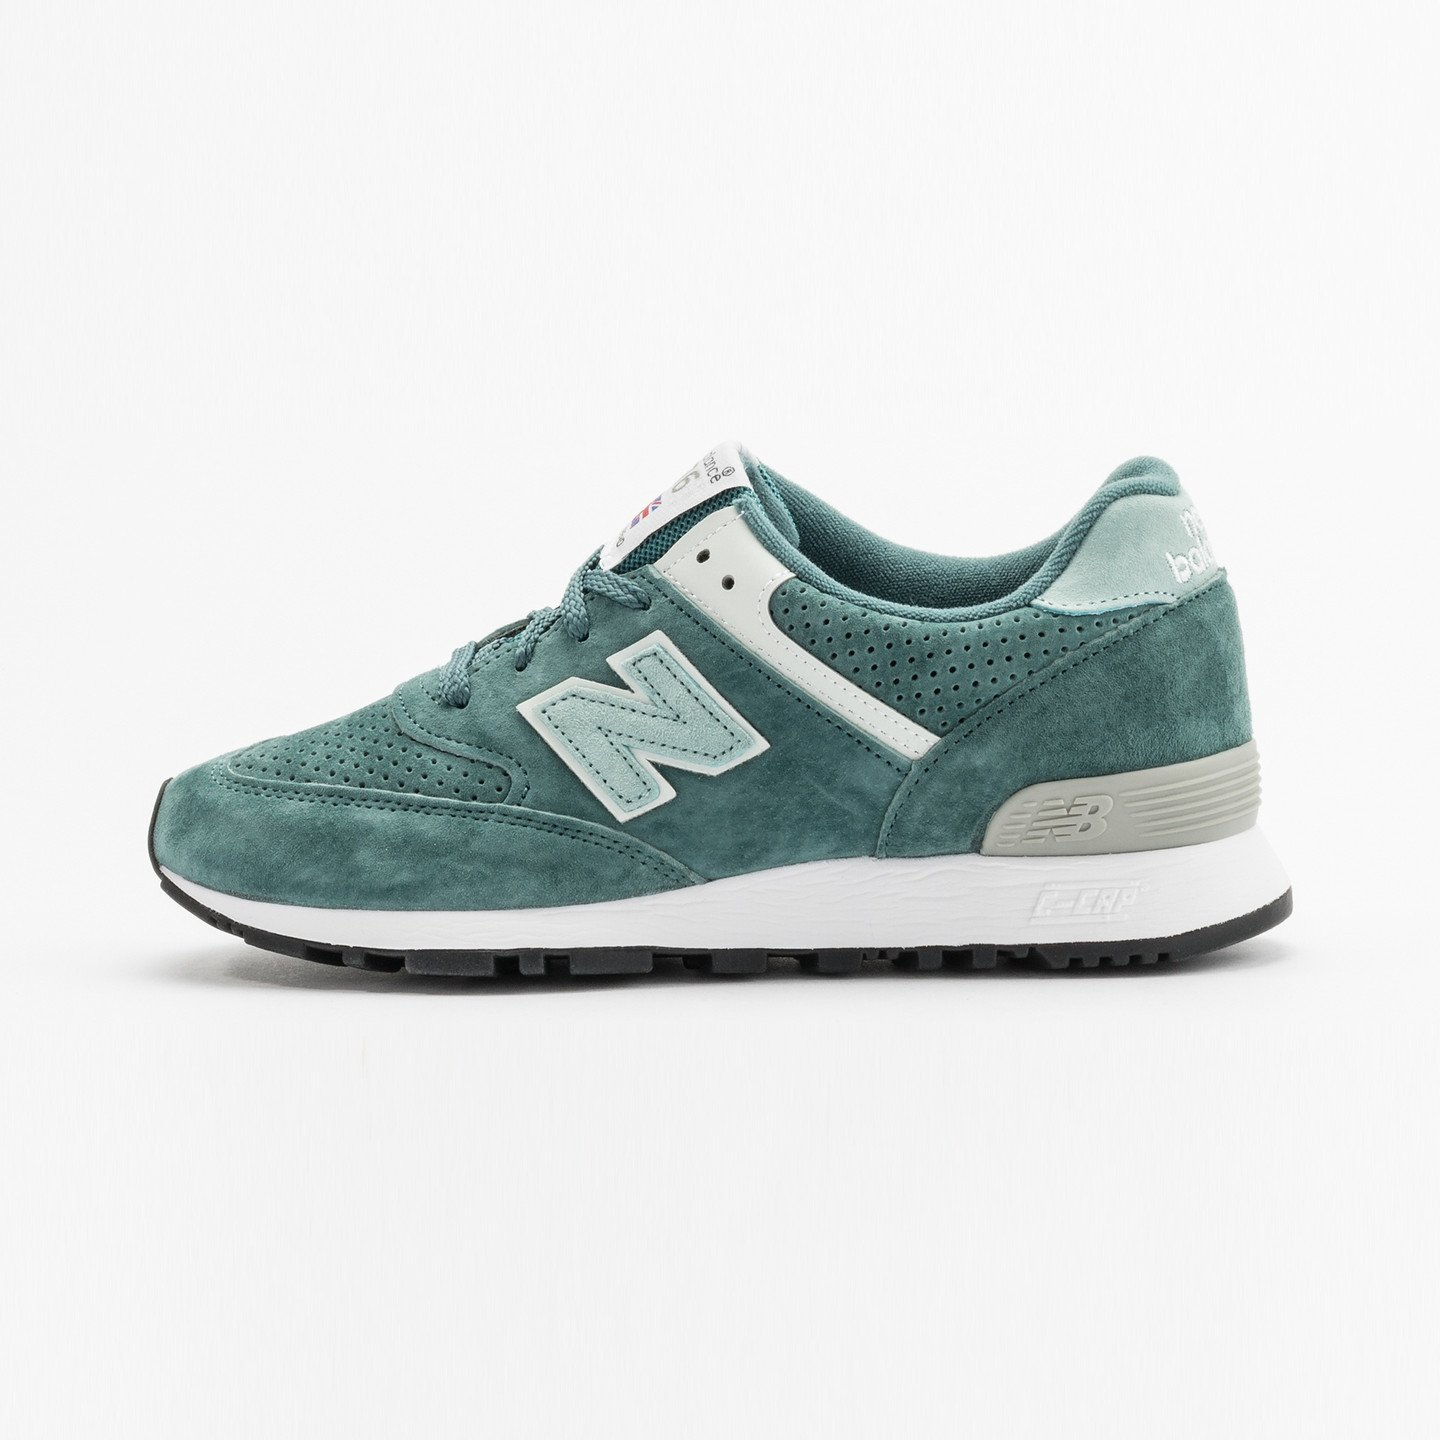 New Balance W 576 PMM - Made in UK Ocean Turquoise W576PMM-37